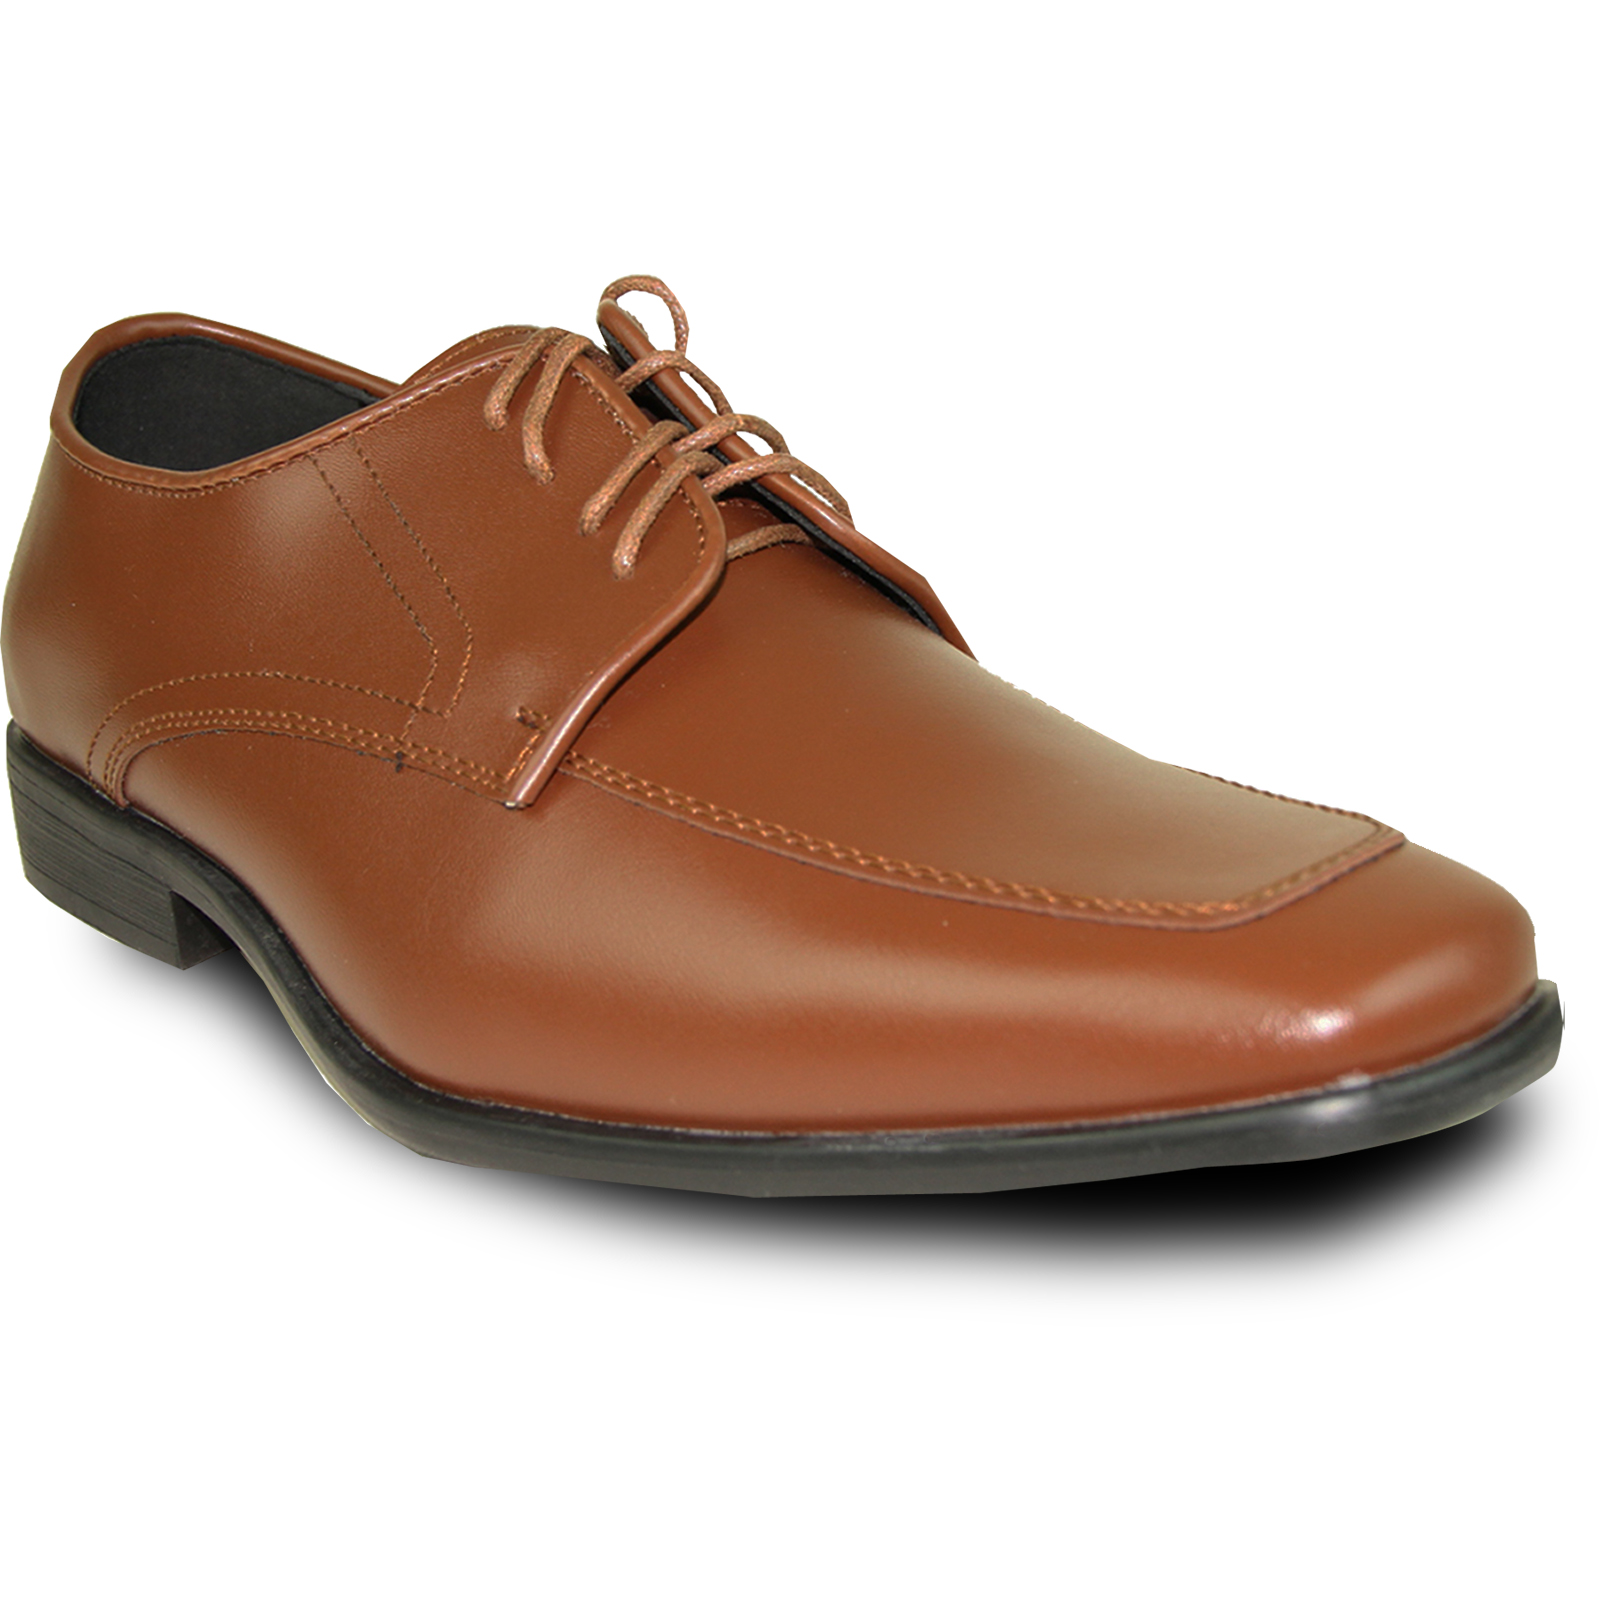 Cognac Allure Dress Shoe